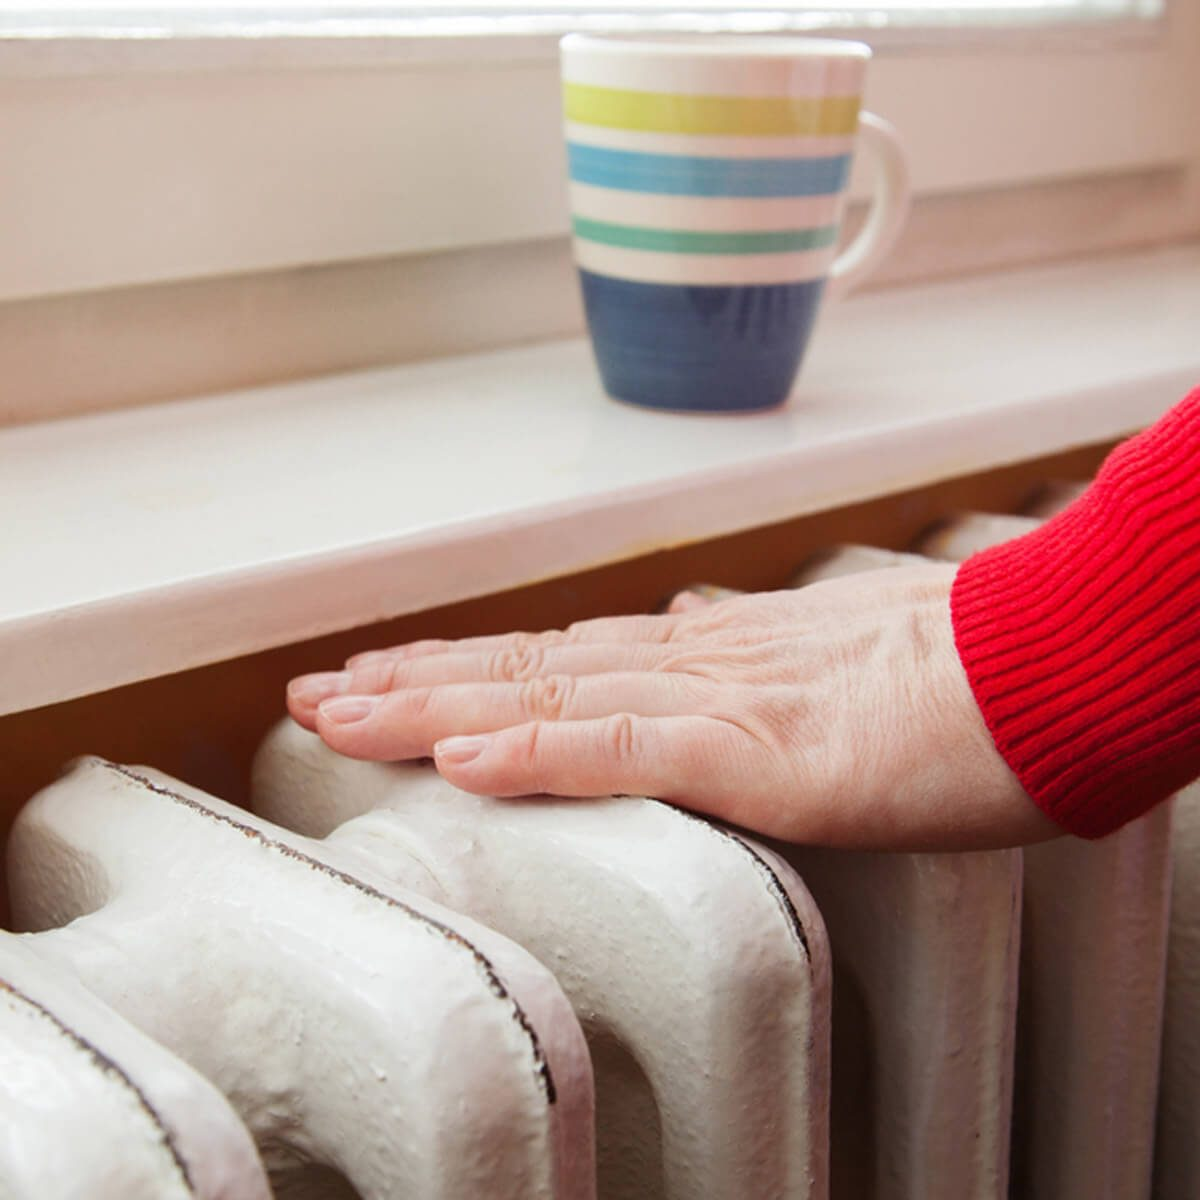 shutterstock_514910308 radiator warm home tea